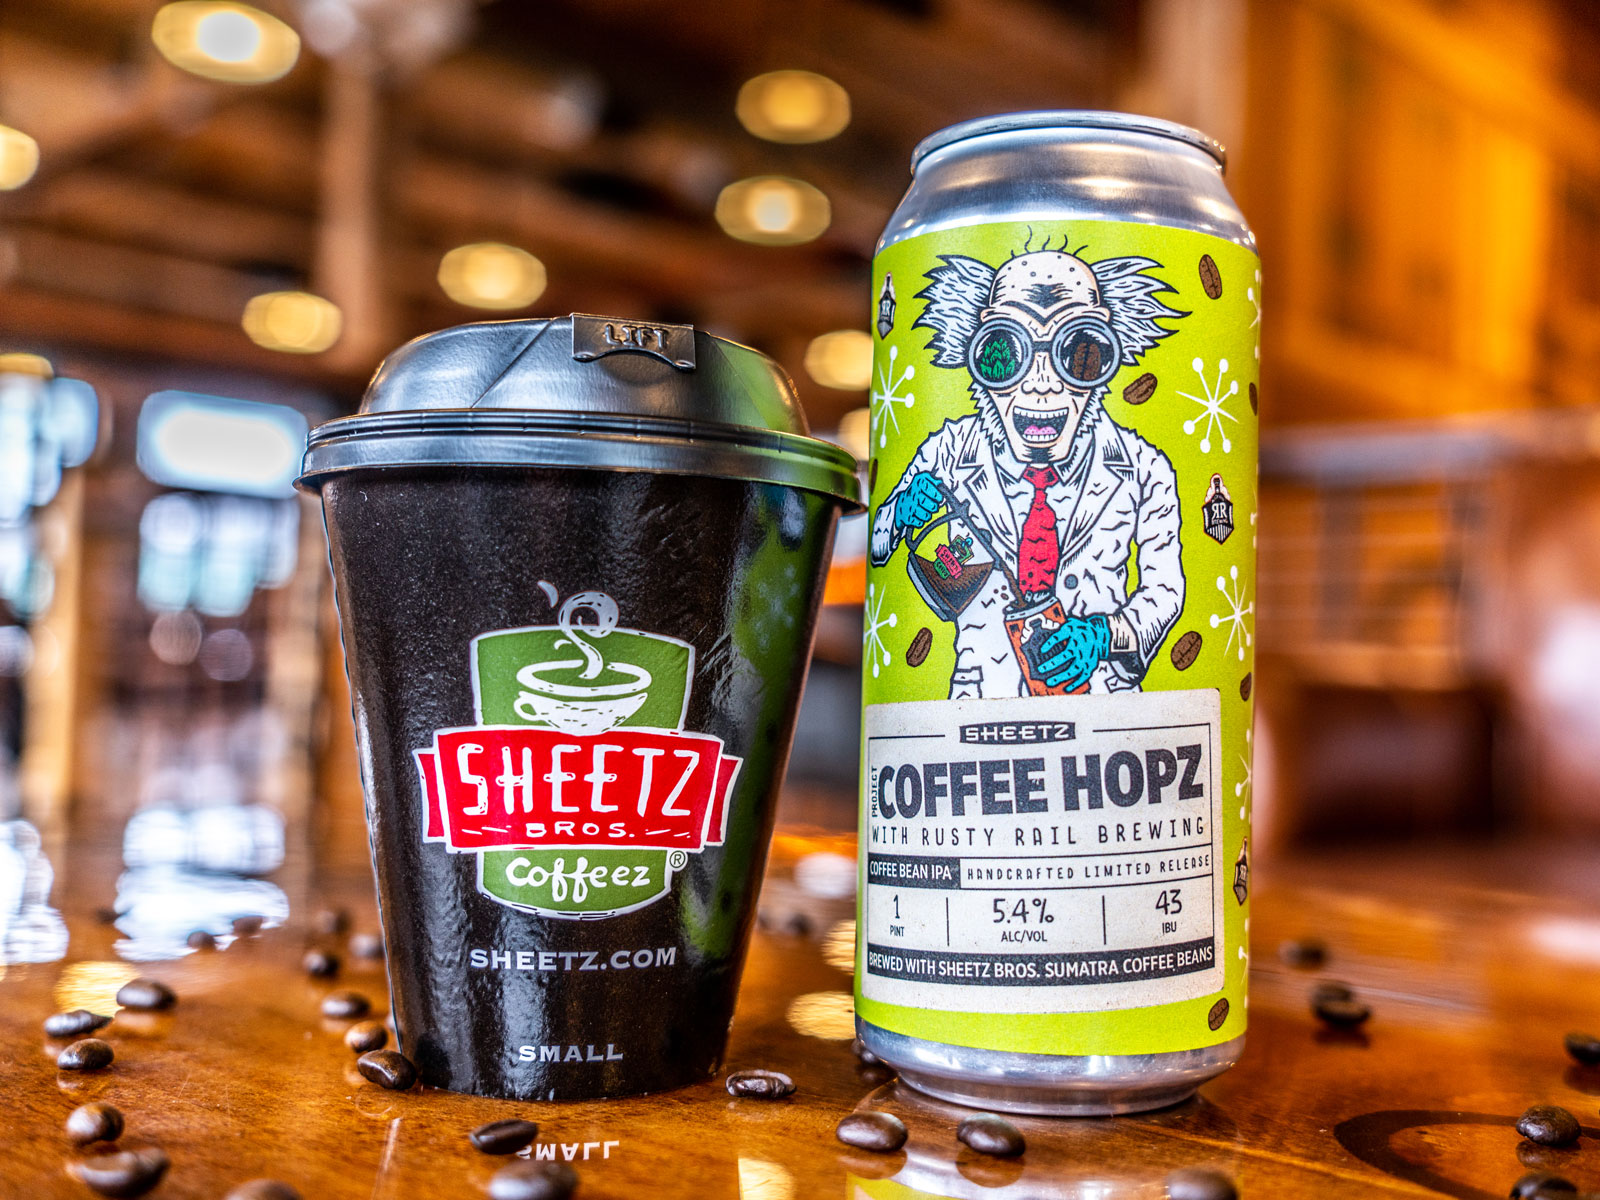 sheetz-rusty-rail-coffee-hopz-FT-BLOG0519.jpg